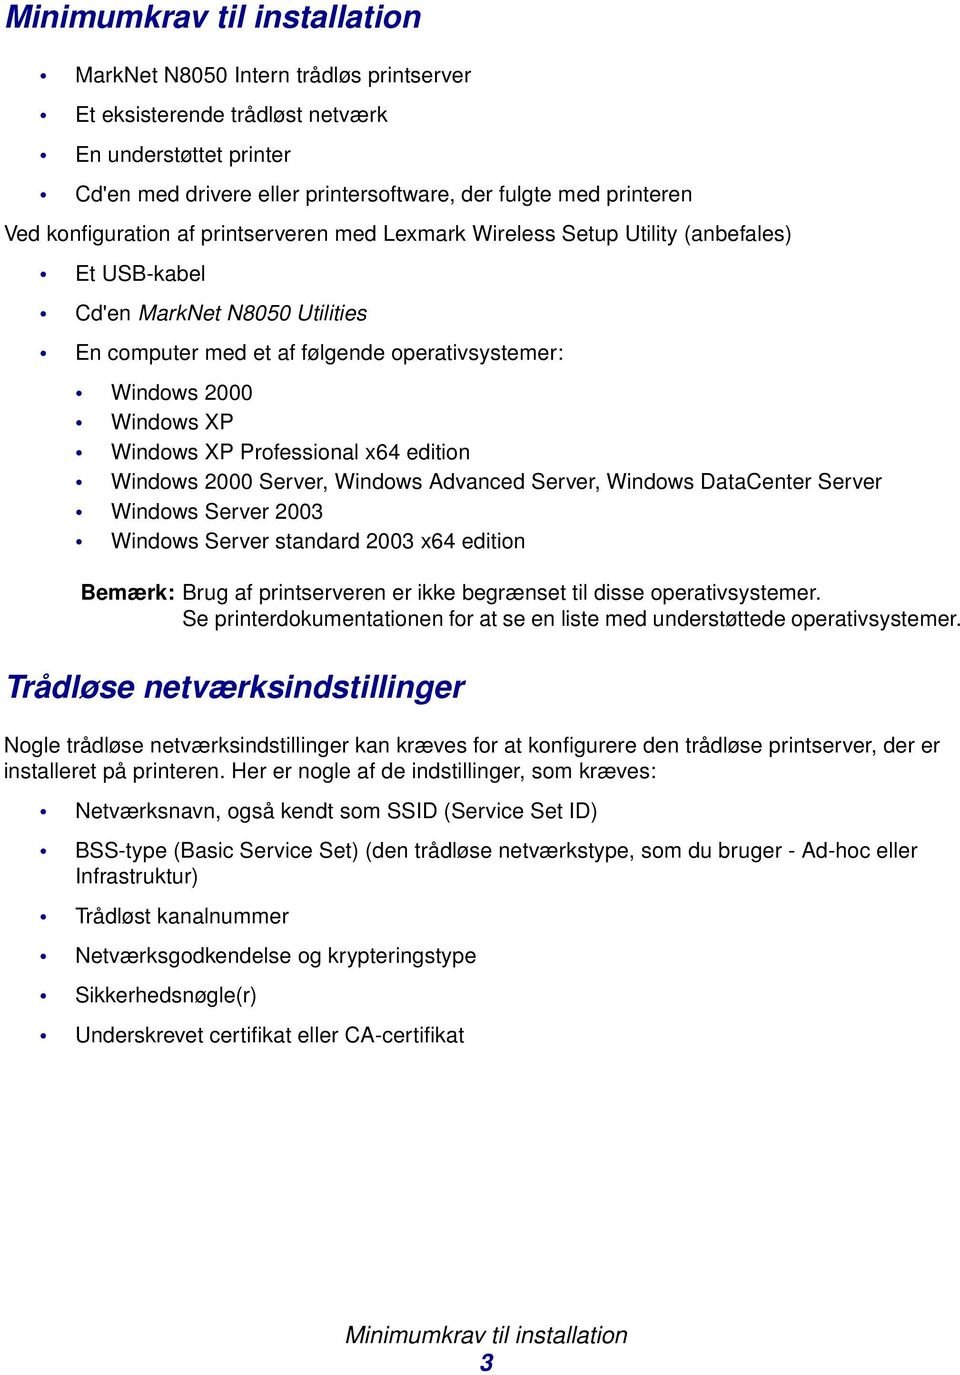 Windows XP Professional x64 edition Windows 2000 Server, Windows Advanced Server, Windows DataCenter Server Windows Server 2003 Windows Server standard 2003 x64 edition Bemærk: Brug af printserveren